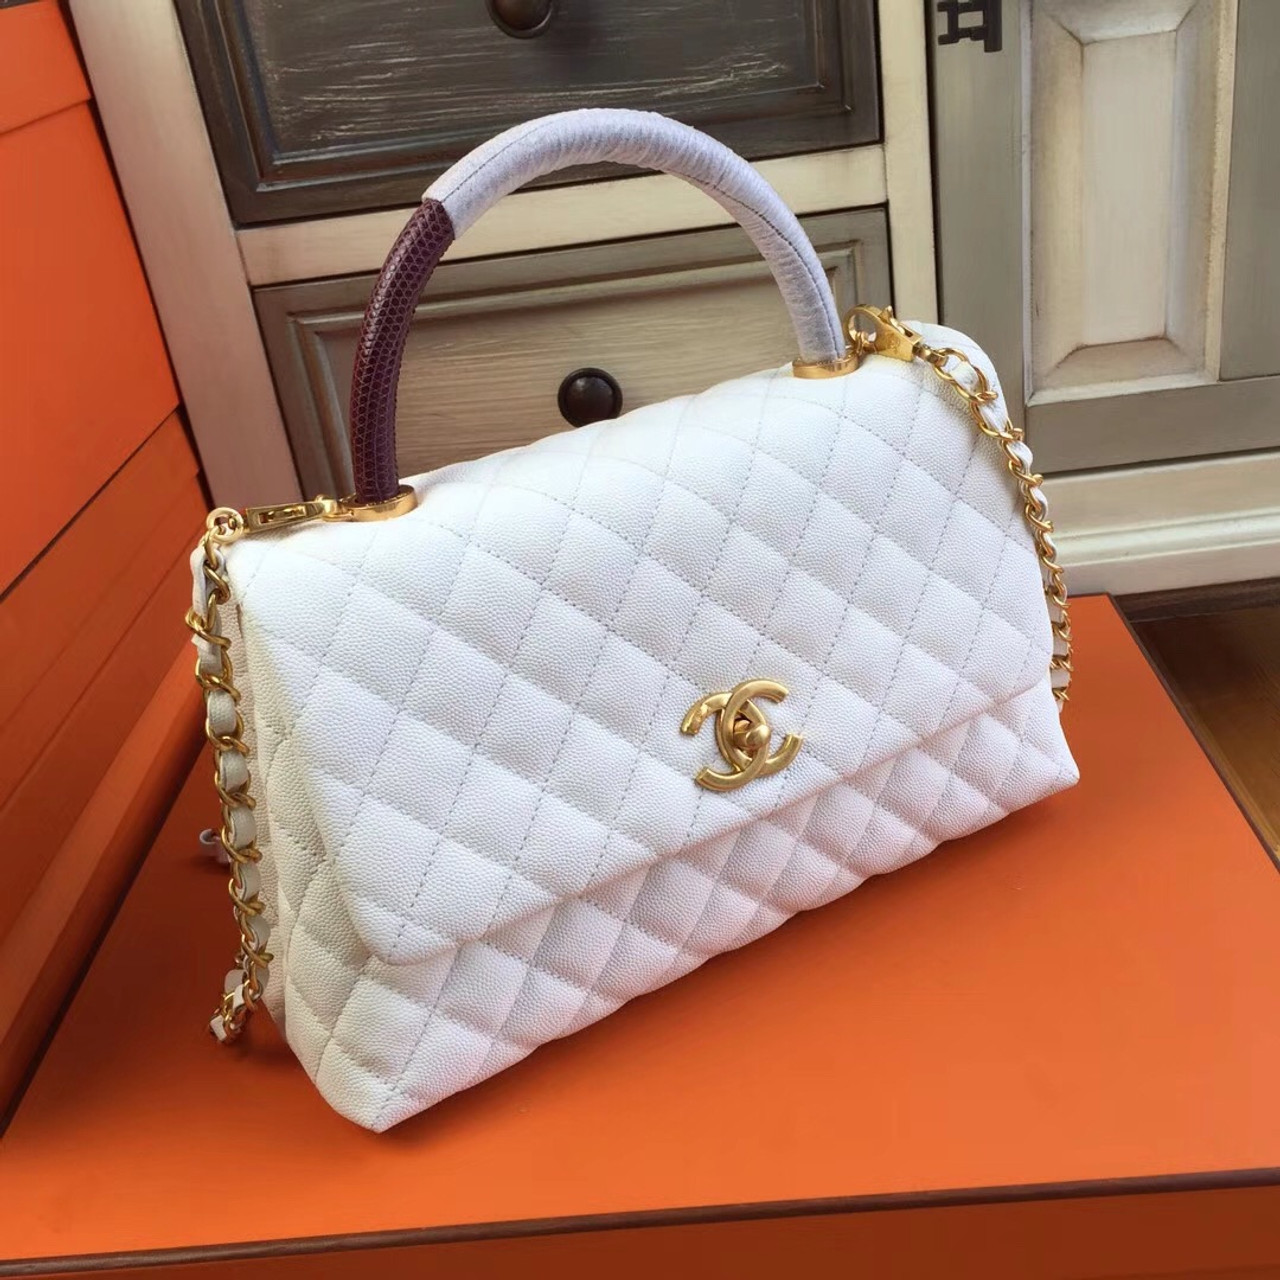 1145feb84de202 Chanel White Calfskin/Lizard Coco Handle Bag - Bella Vita Moda